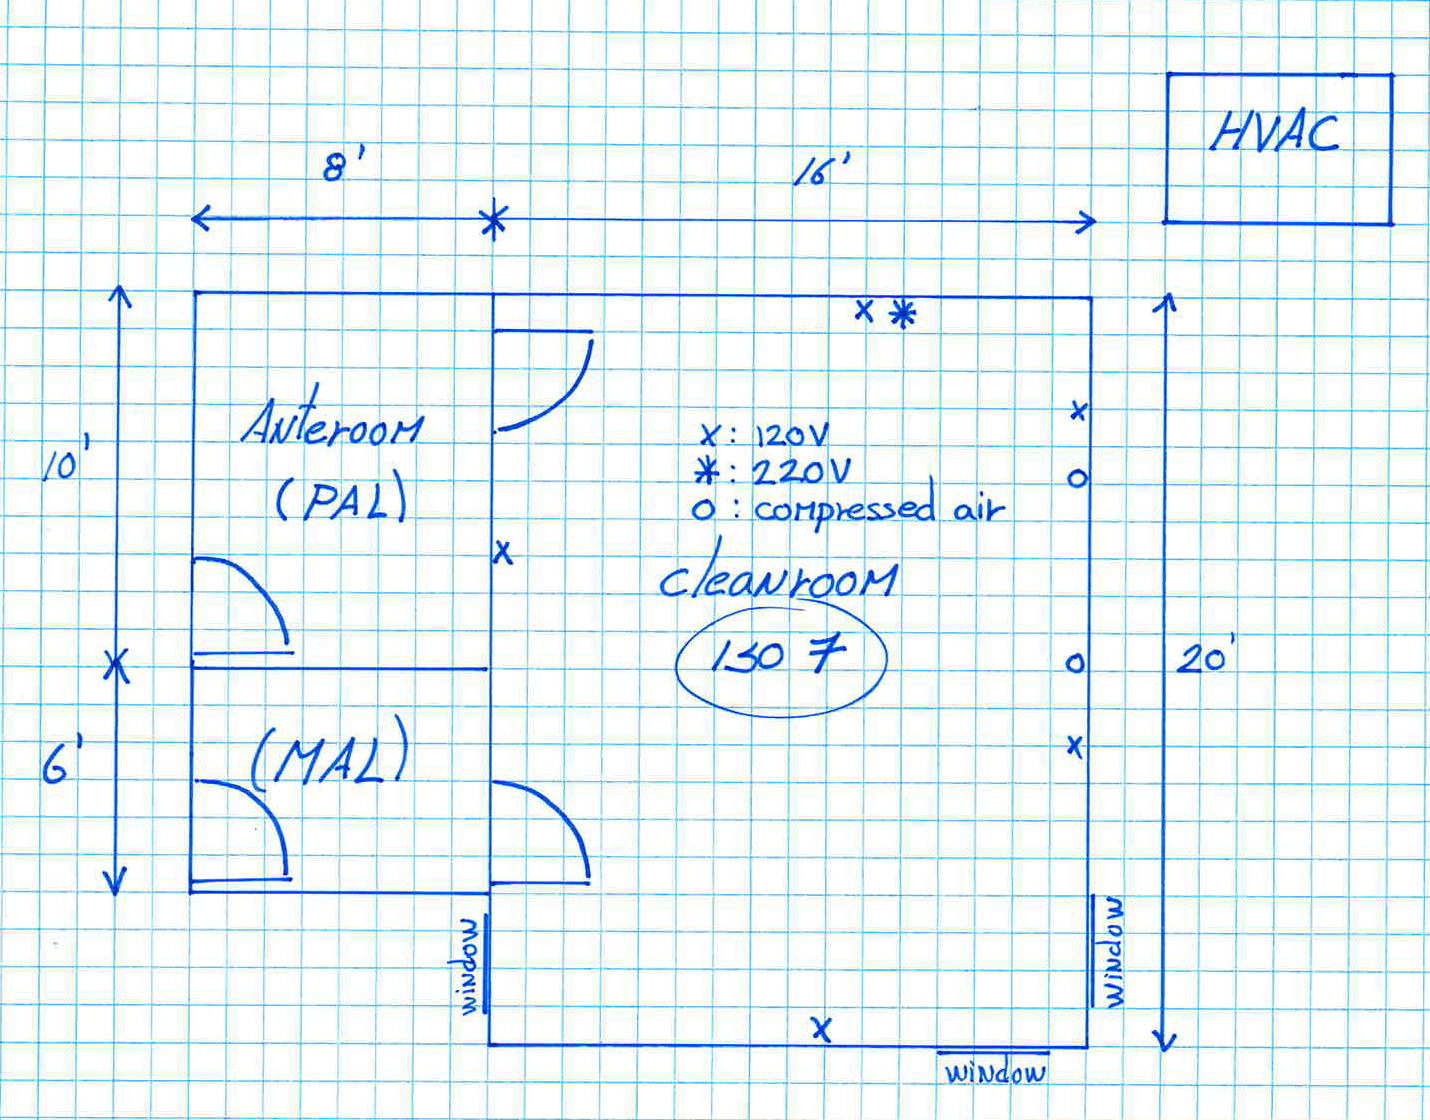 sketch layout anteroom hvac iso 7 cleanroom modular